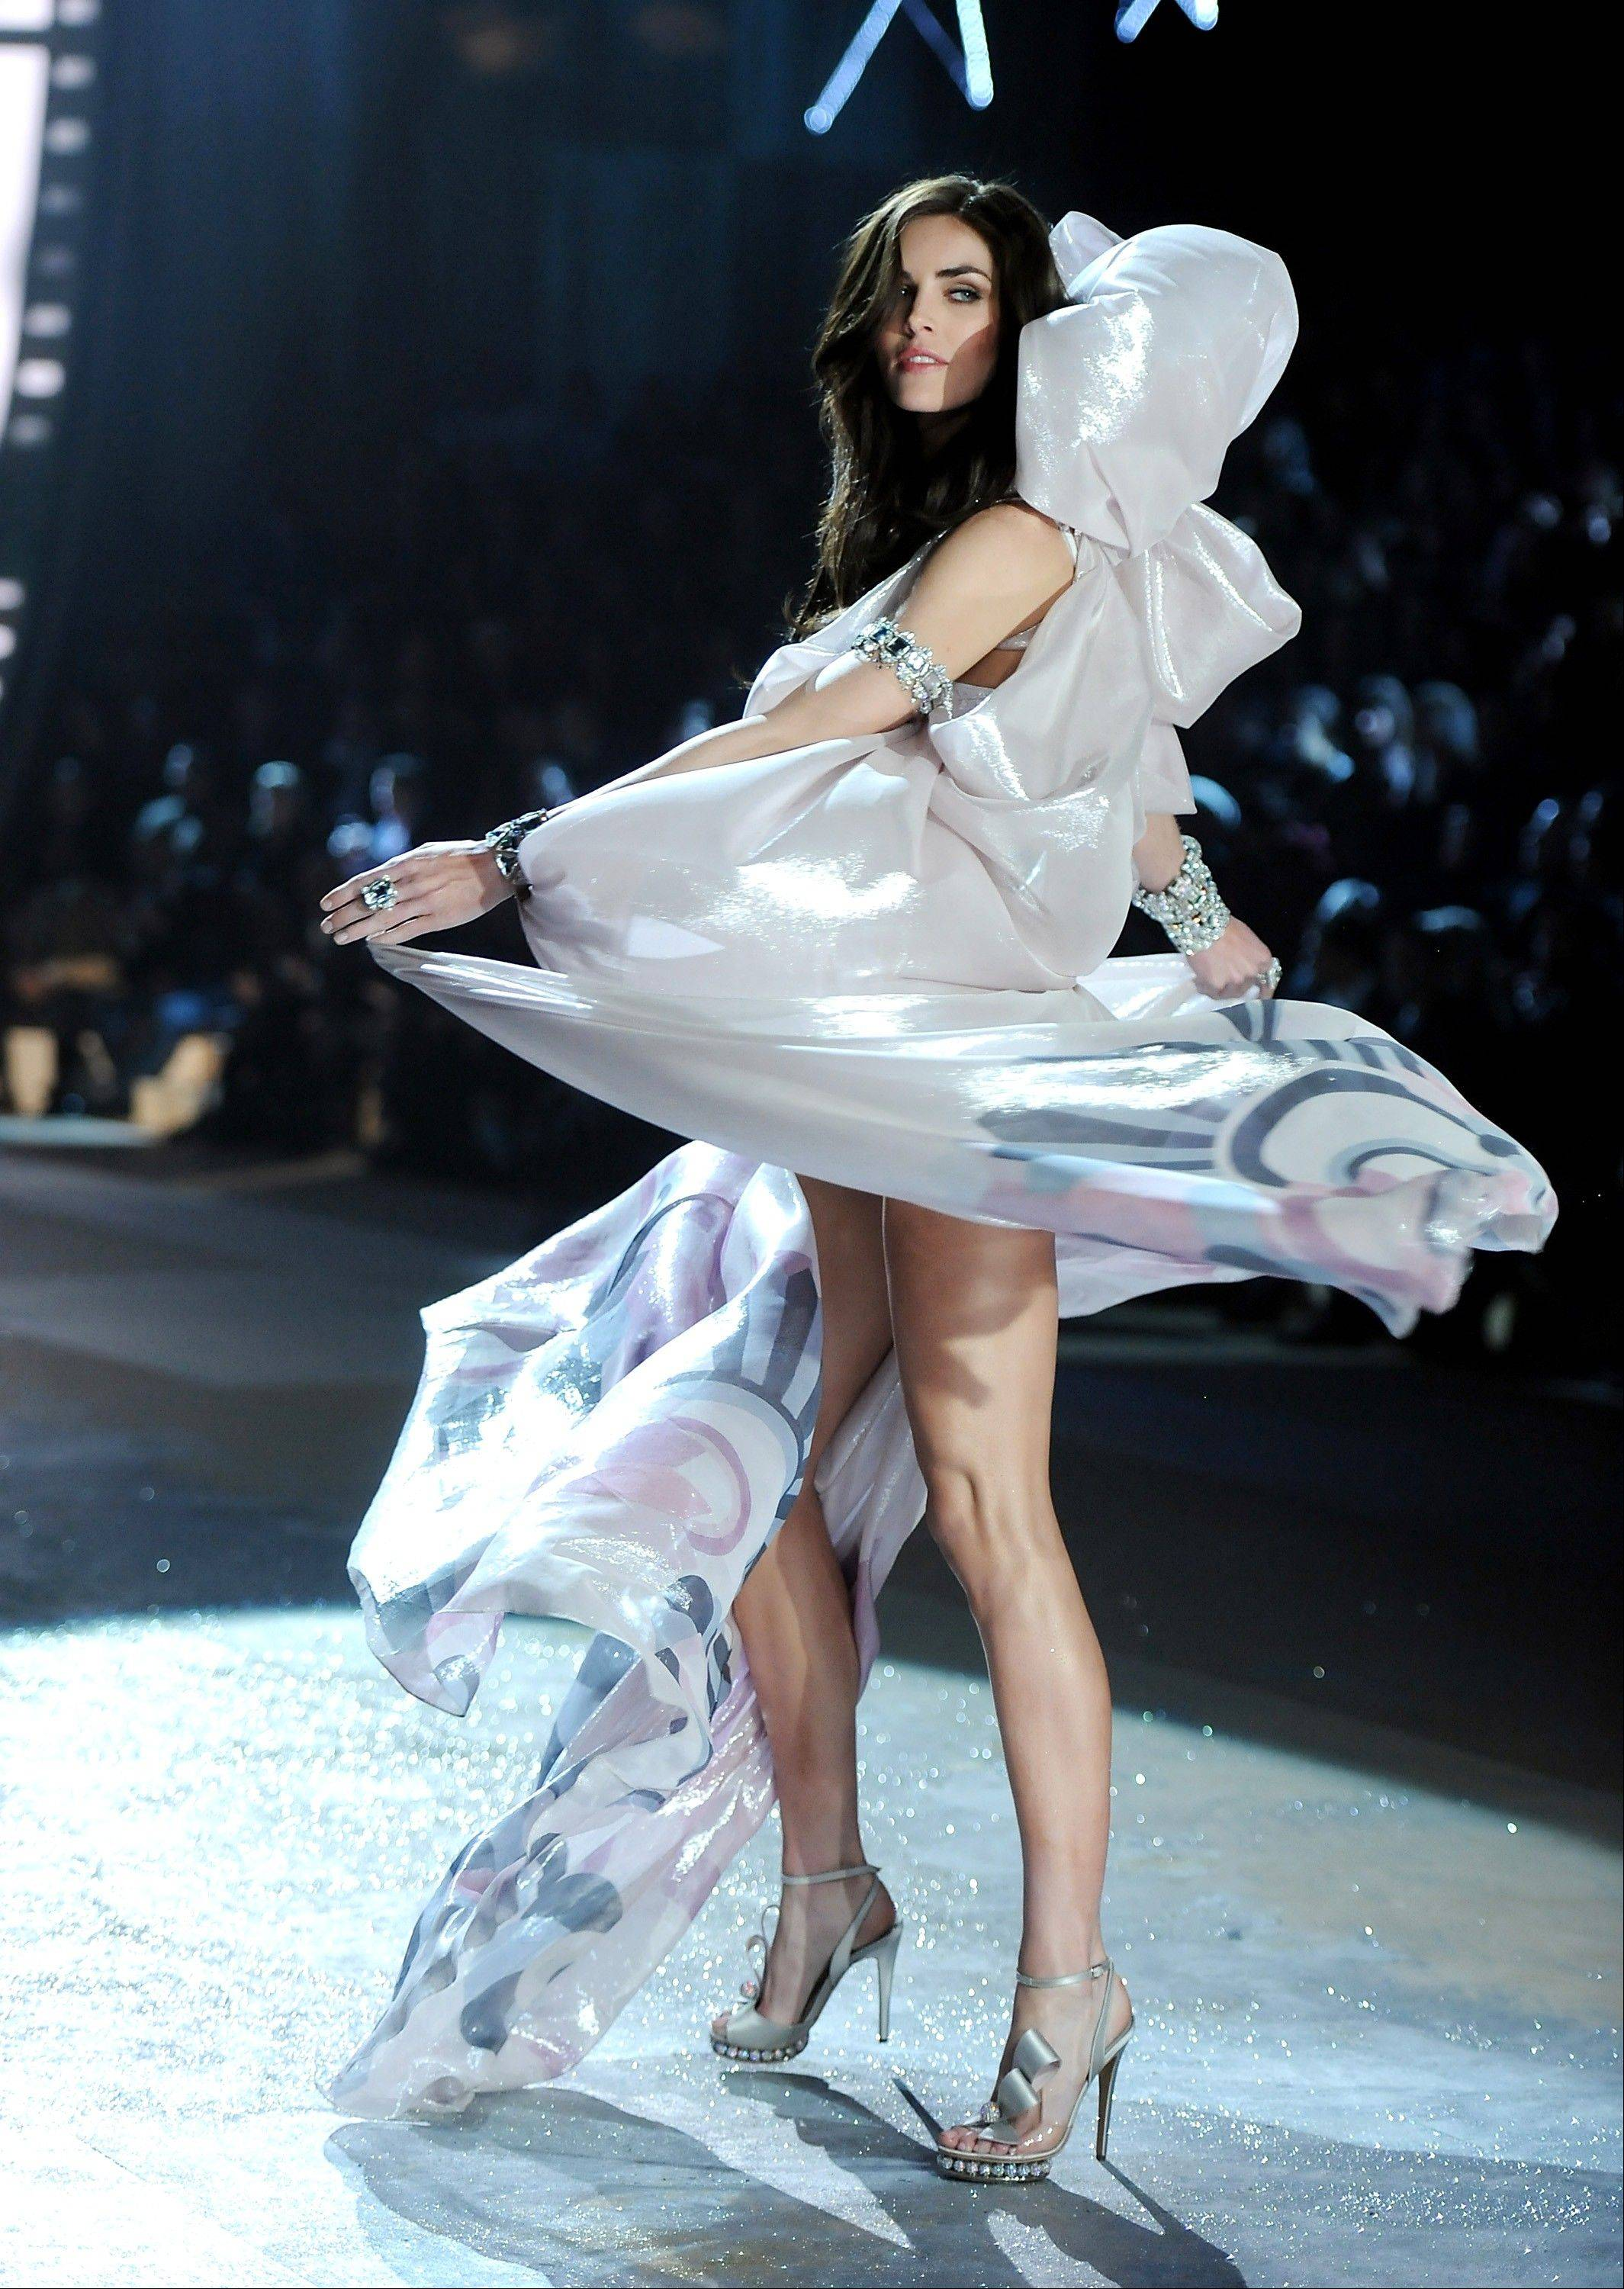 Model Hilary Rhoda walks the runway during the 2012 Victoria's Secret Fashion Show.